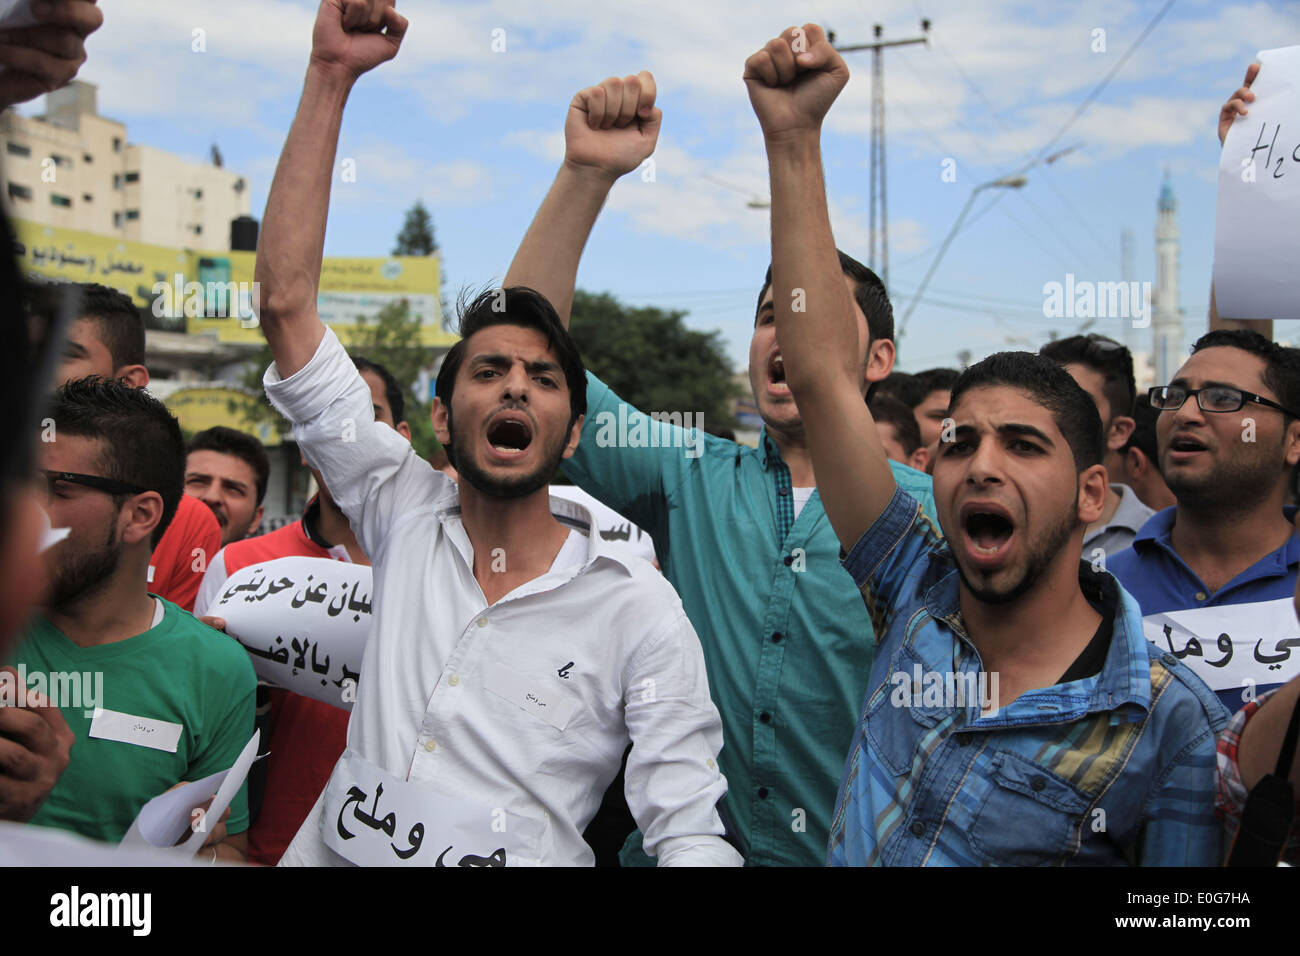 Gaza. 12th May, 2014. Palestinian protestors shout slogans during a protest in Gaza City, on May 12, 2014. The protest - Stock Image